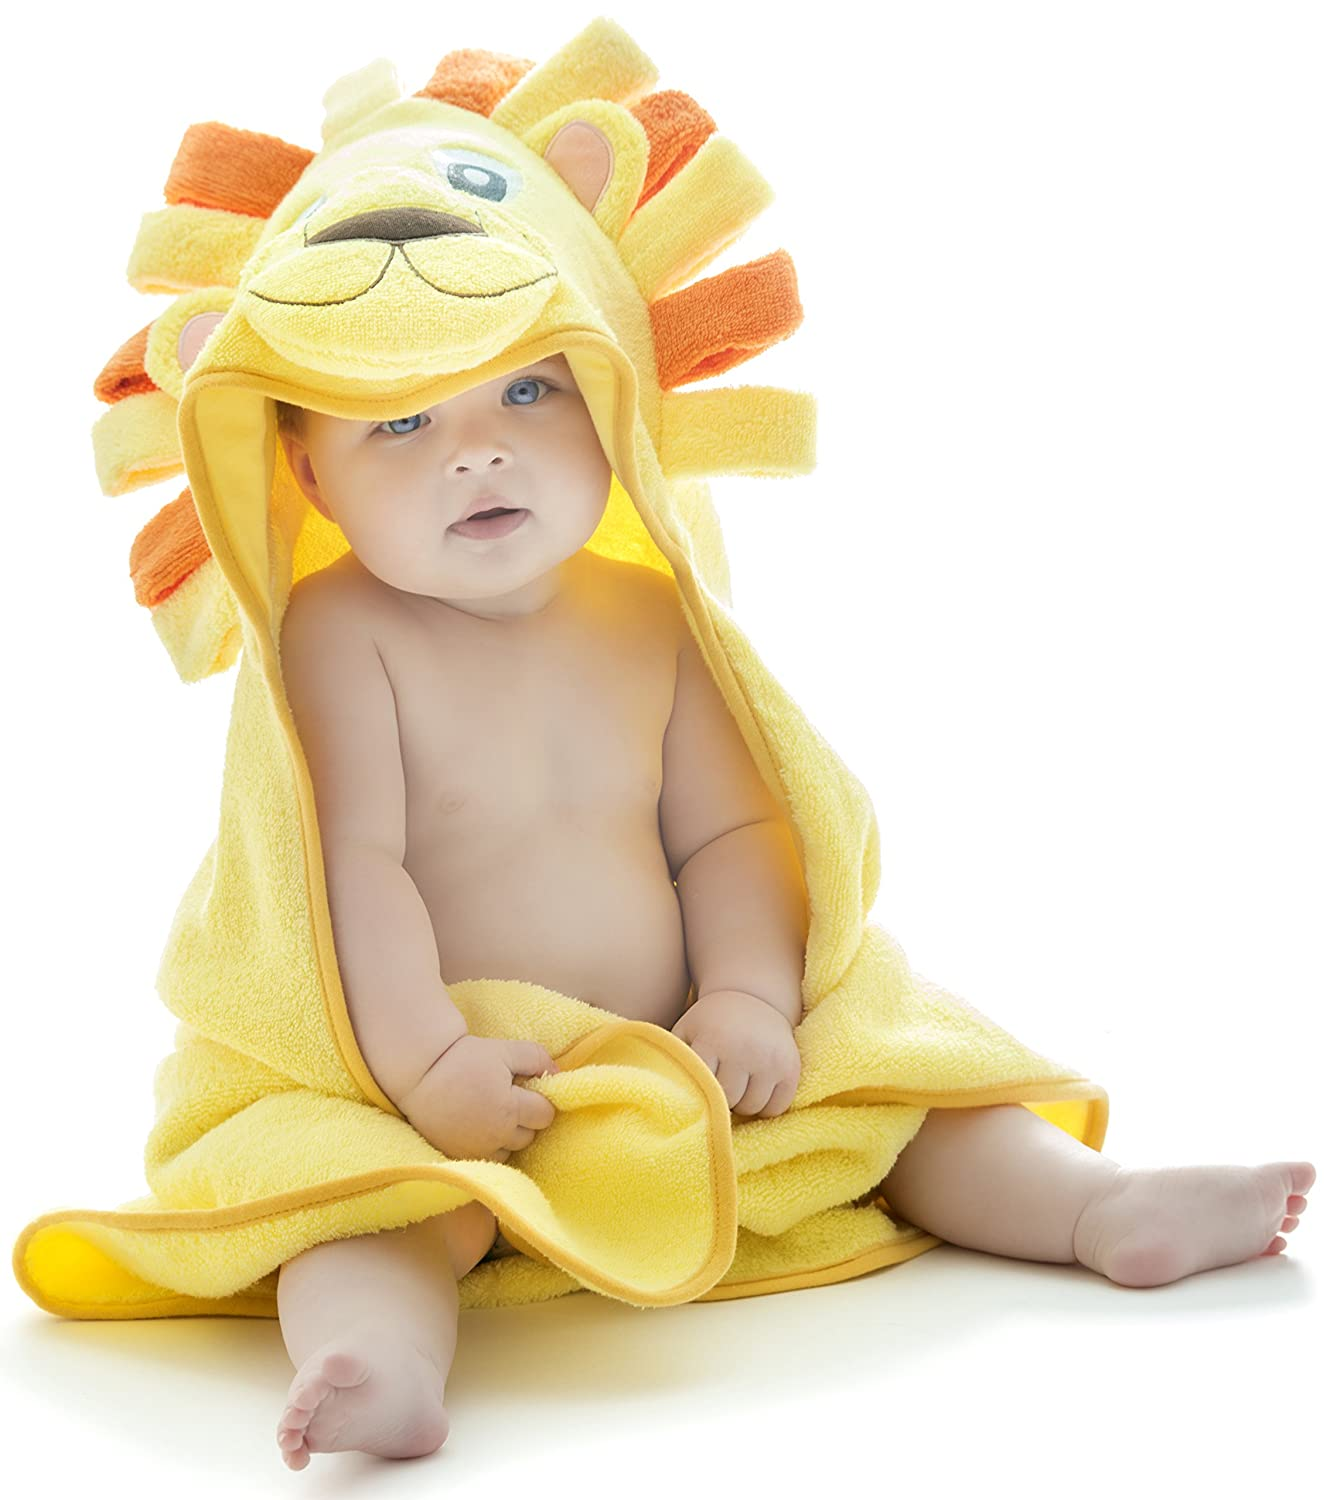 Little Tinkers World Lion Hooded Baby Towel, Natural Cotton (Small) LTW